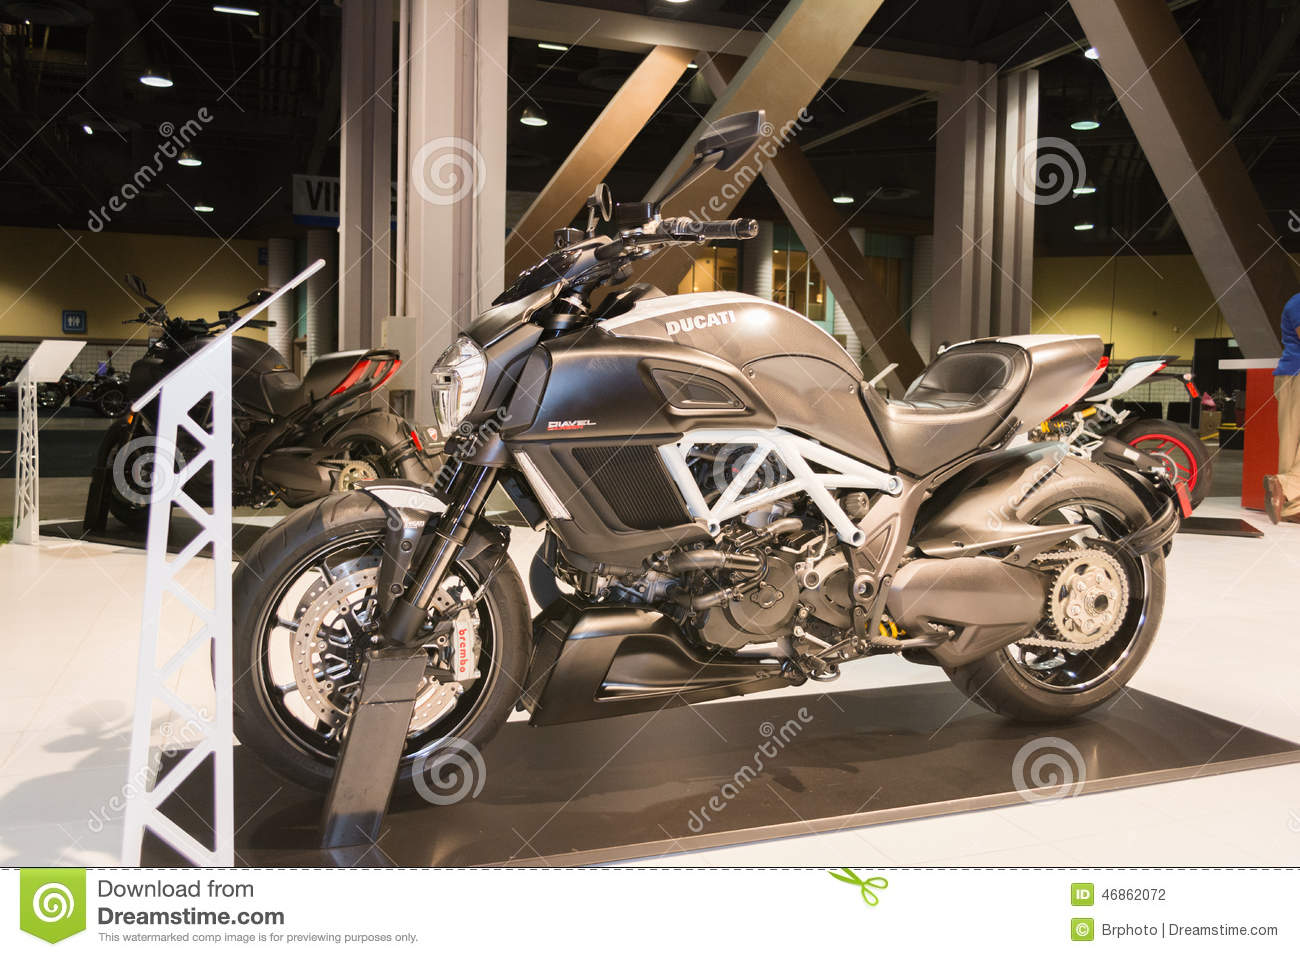 ducati diavel titanium 2015 motorcycle editorial photography